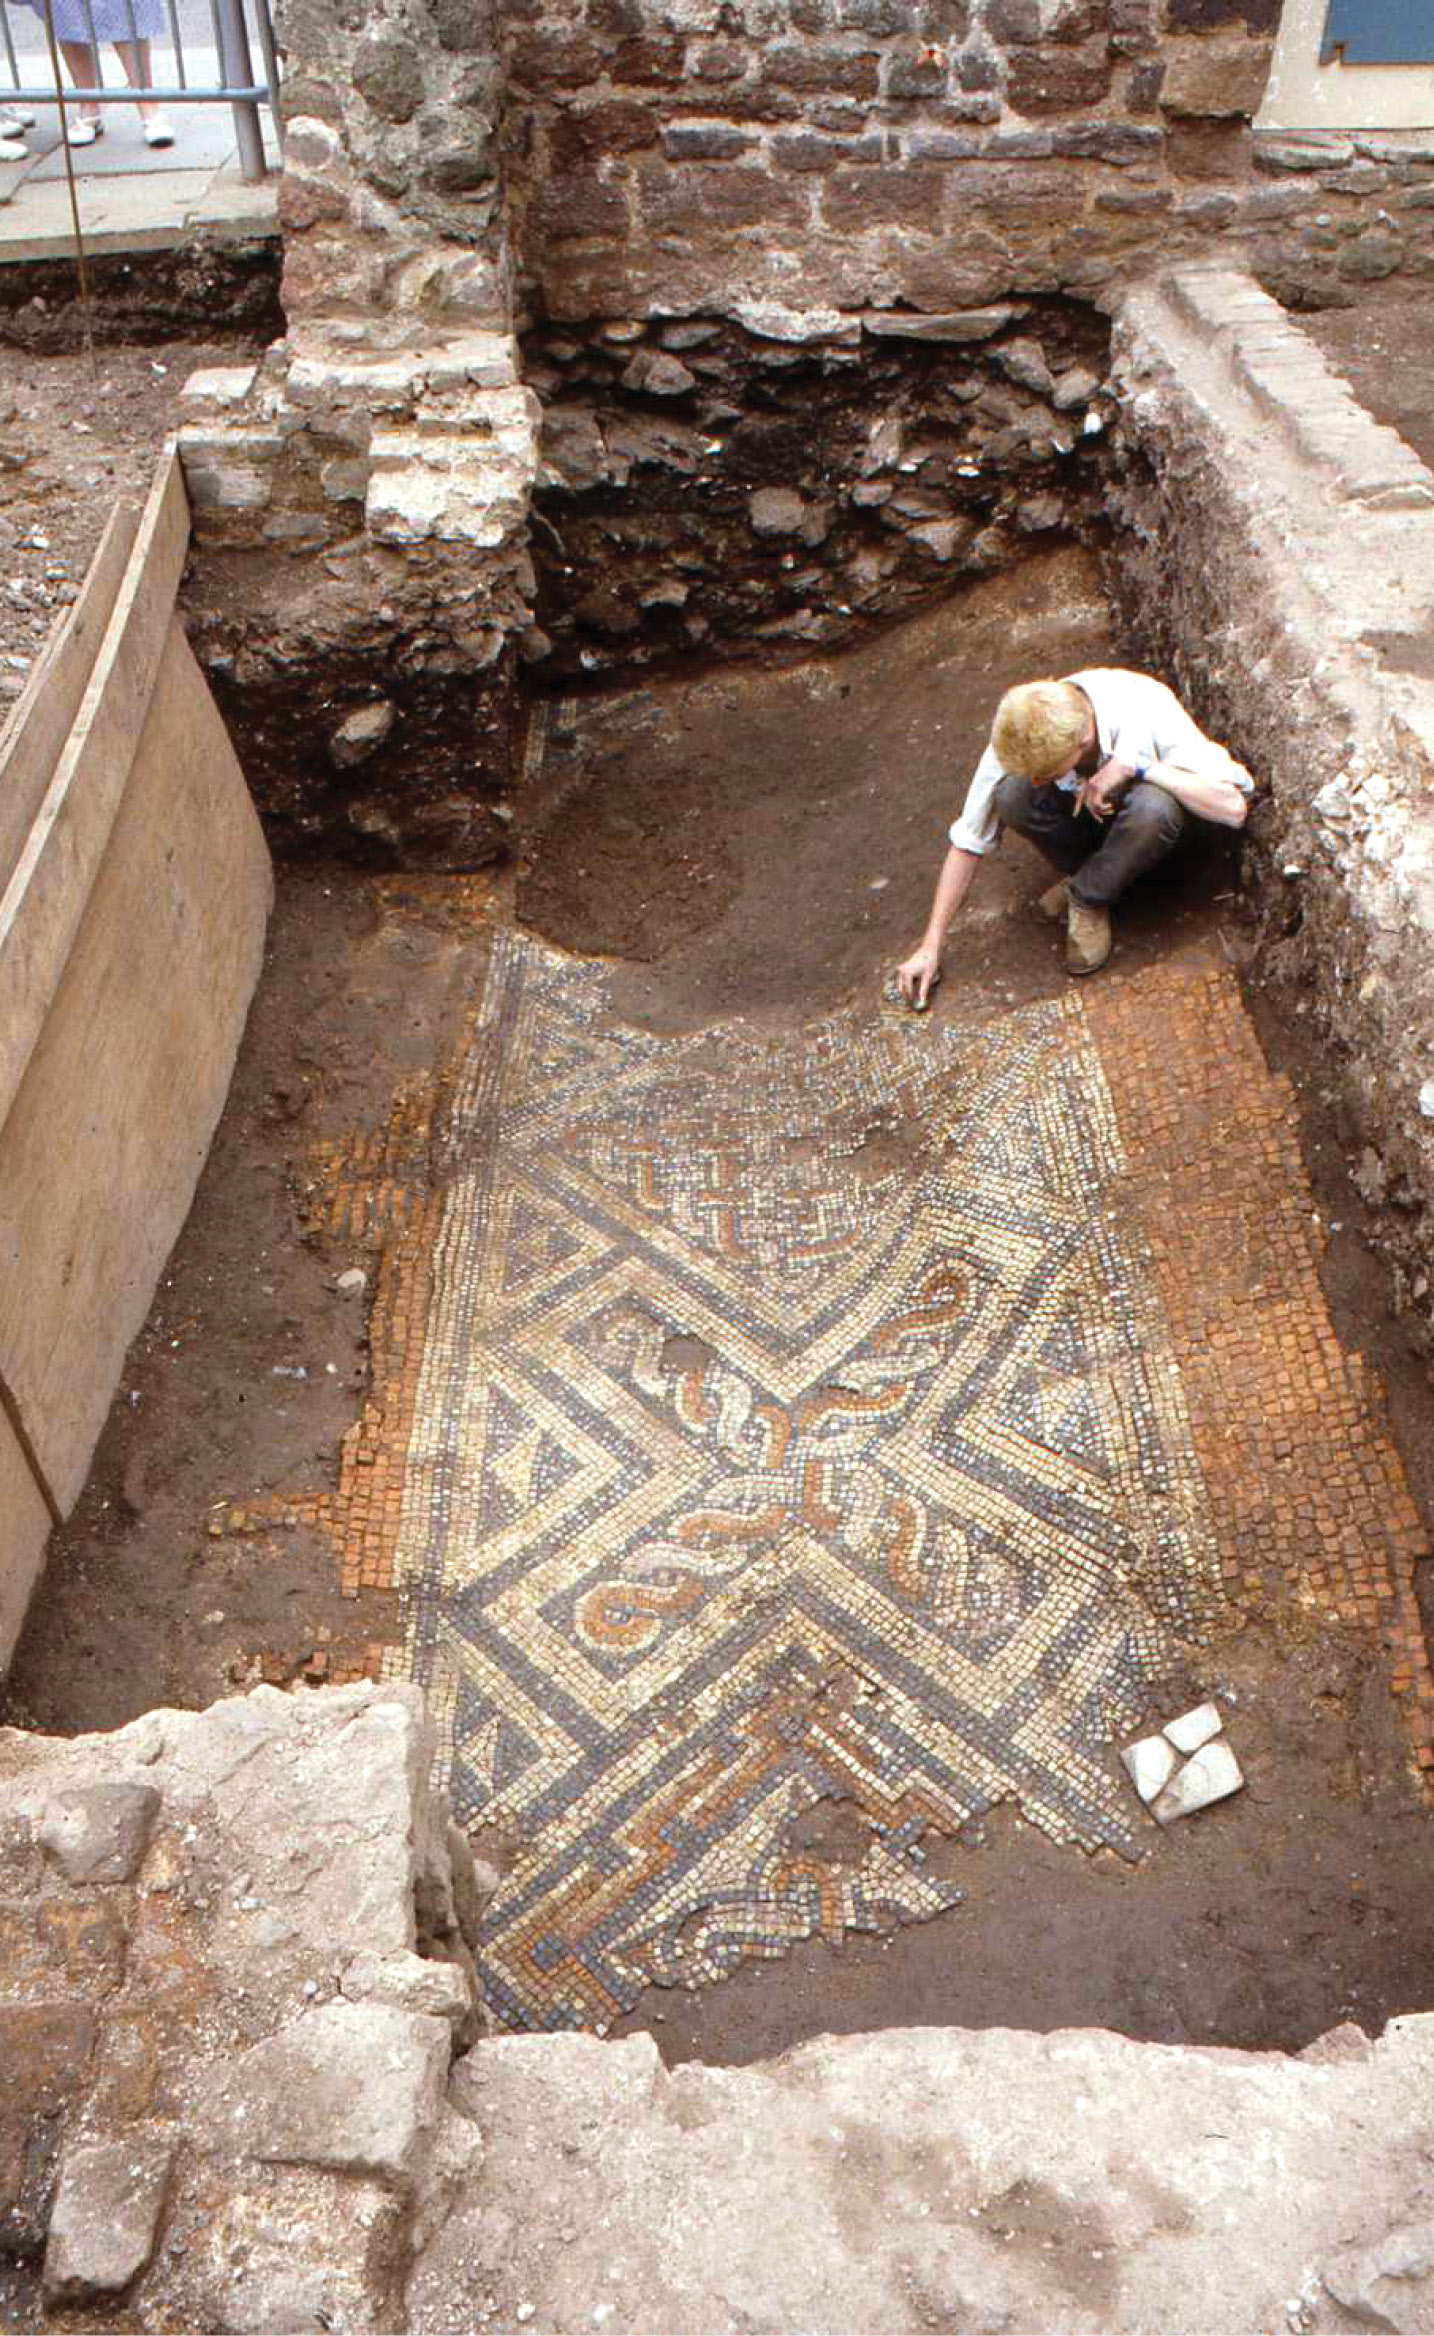 LEFT Echoes of Isca: this Roman corridor mosaic was revealed during excavations at St Catherine's Almshouses in 1987-1988. The centre of the mosaic has subsided markedly, as it overlay the uncompacted fills of the defensive ditch surrounding the early town.